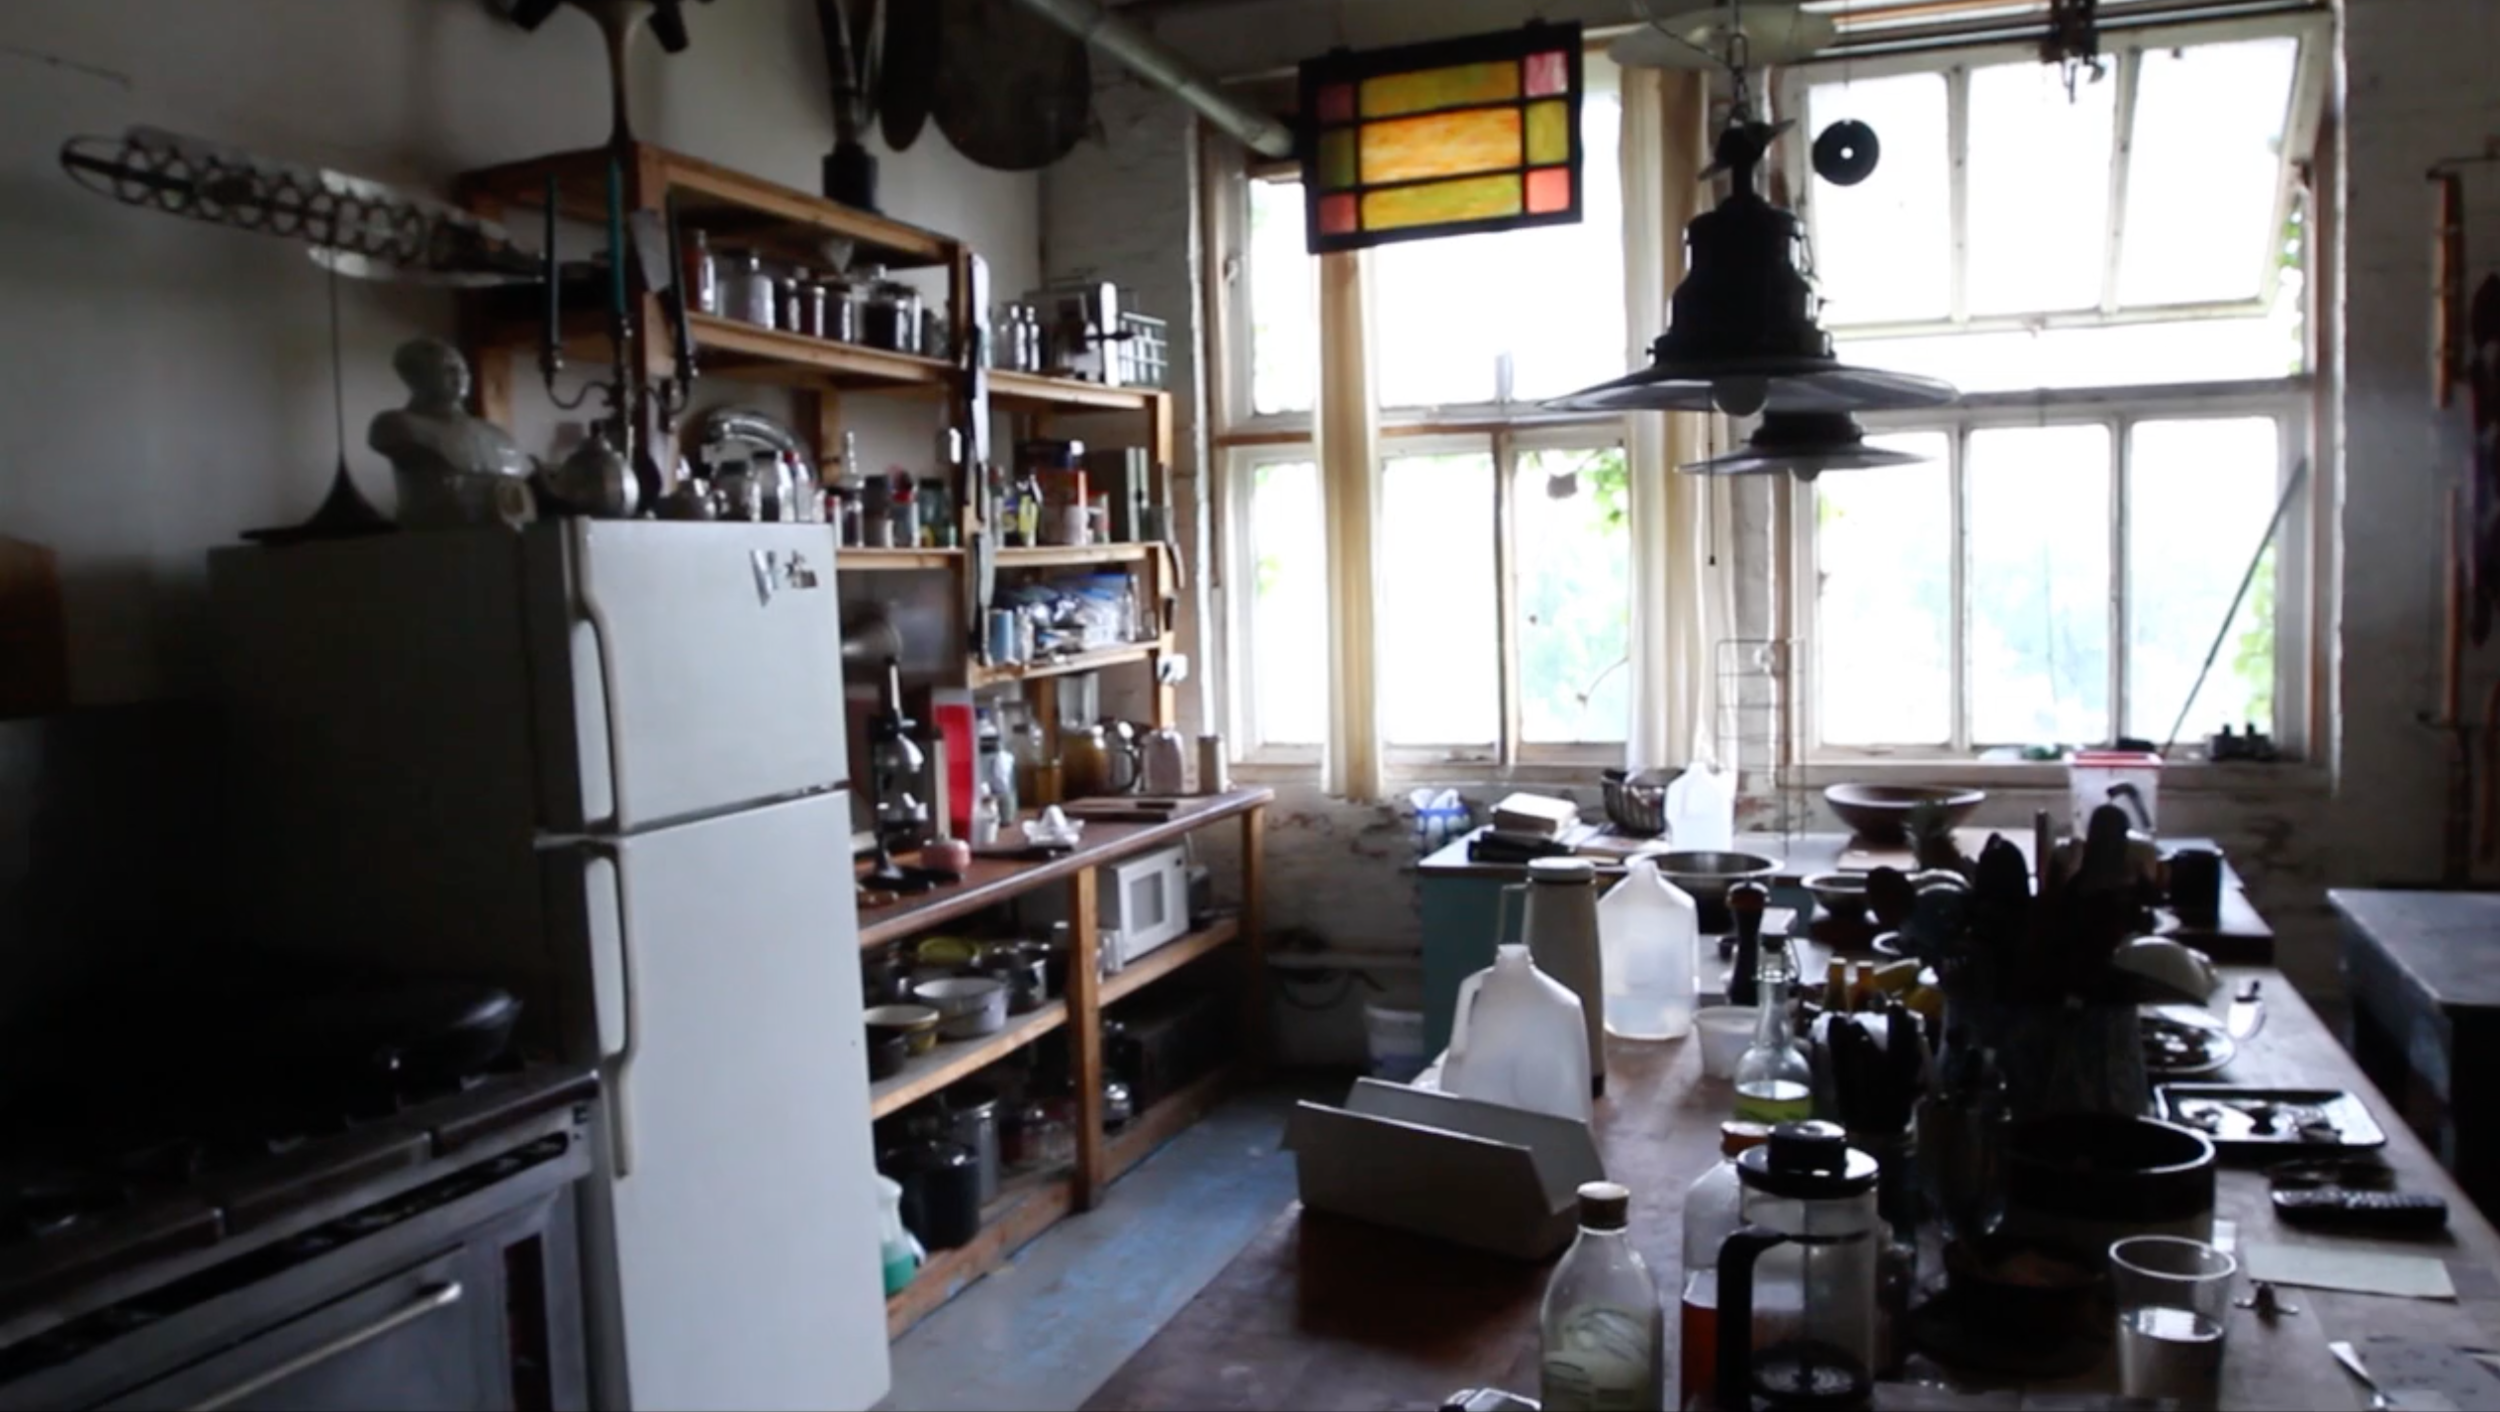 Screen Shot 2016-08-08 at 5.21.58 PM.png